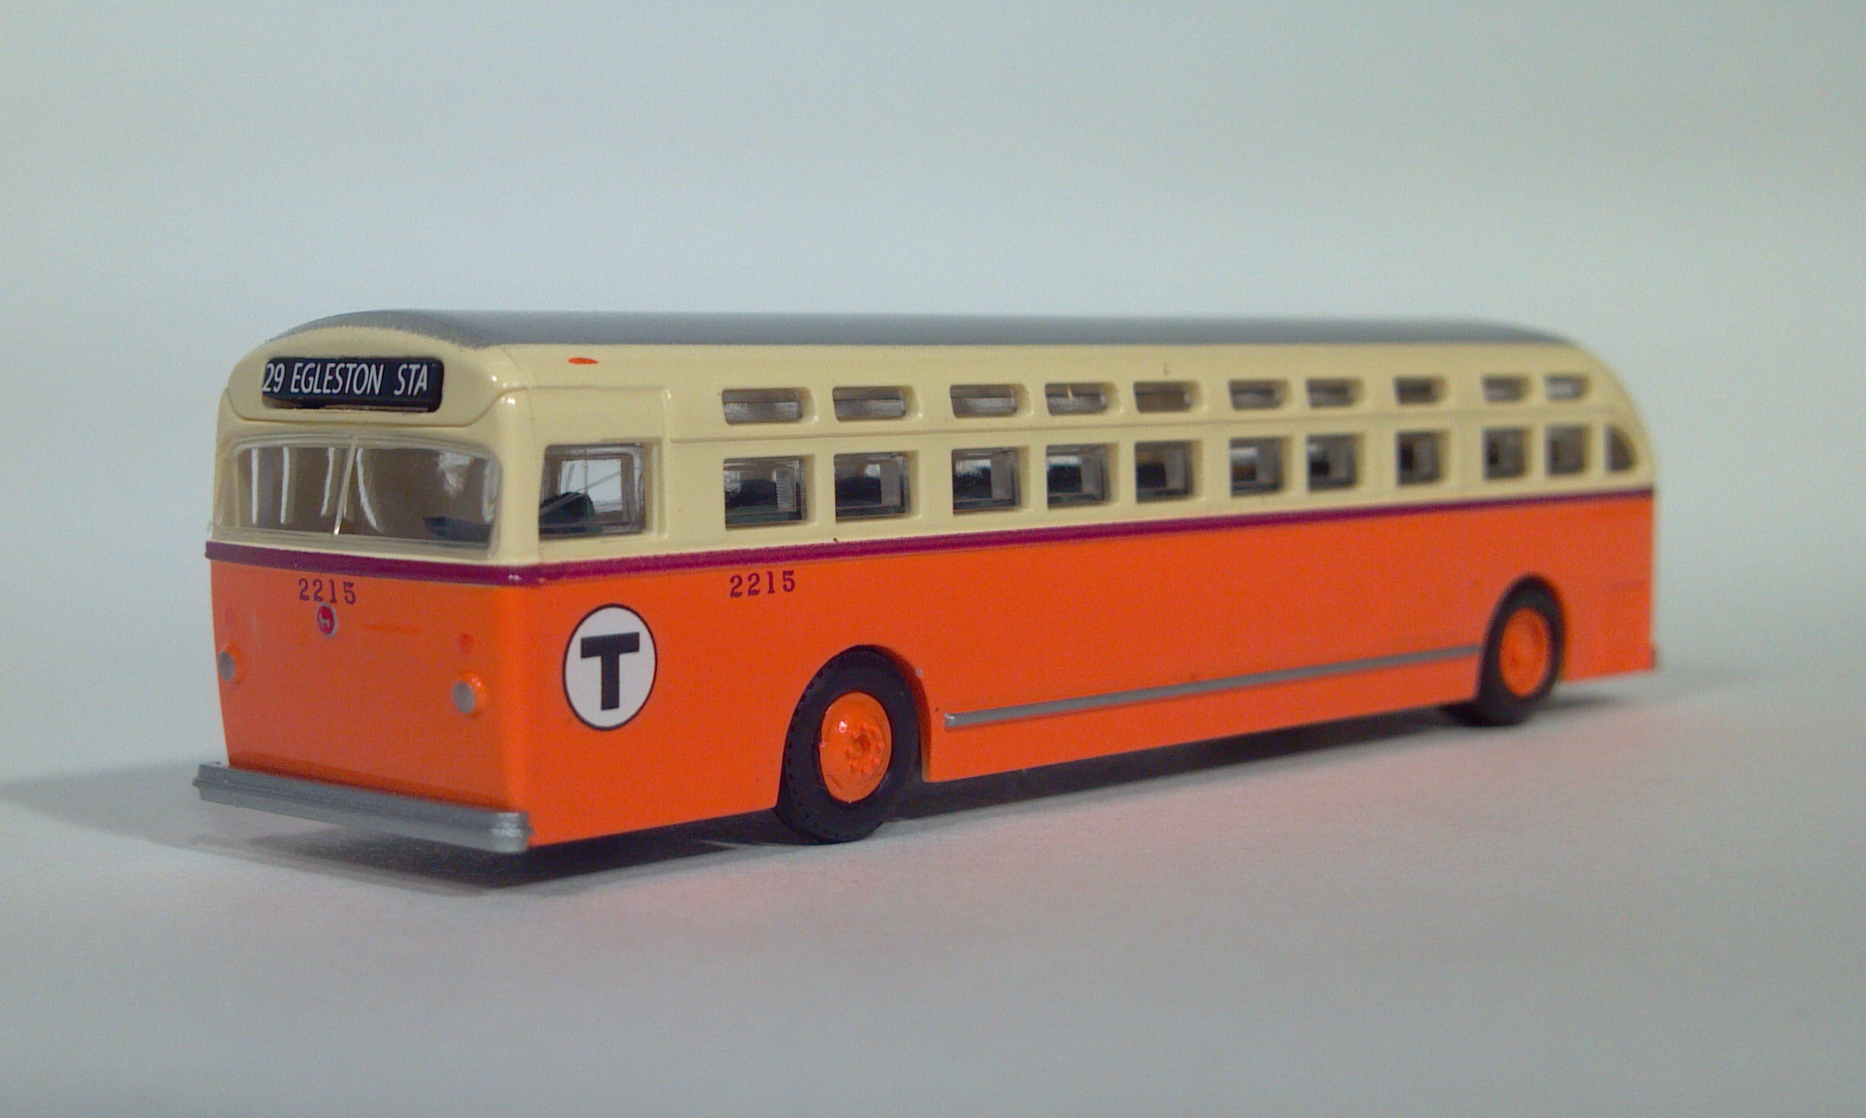 90061 wheels of time coach n scale boston t mbta 2215 29 ... Pacific Railway Company